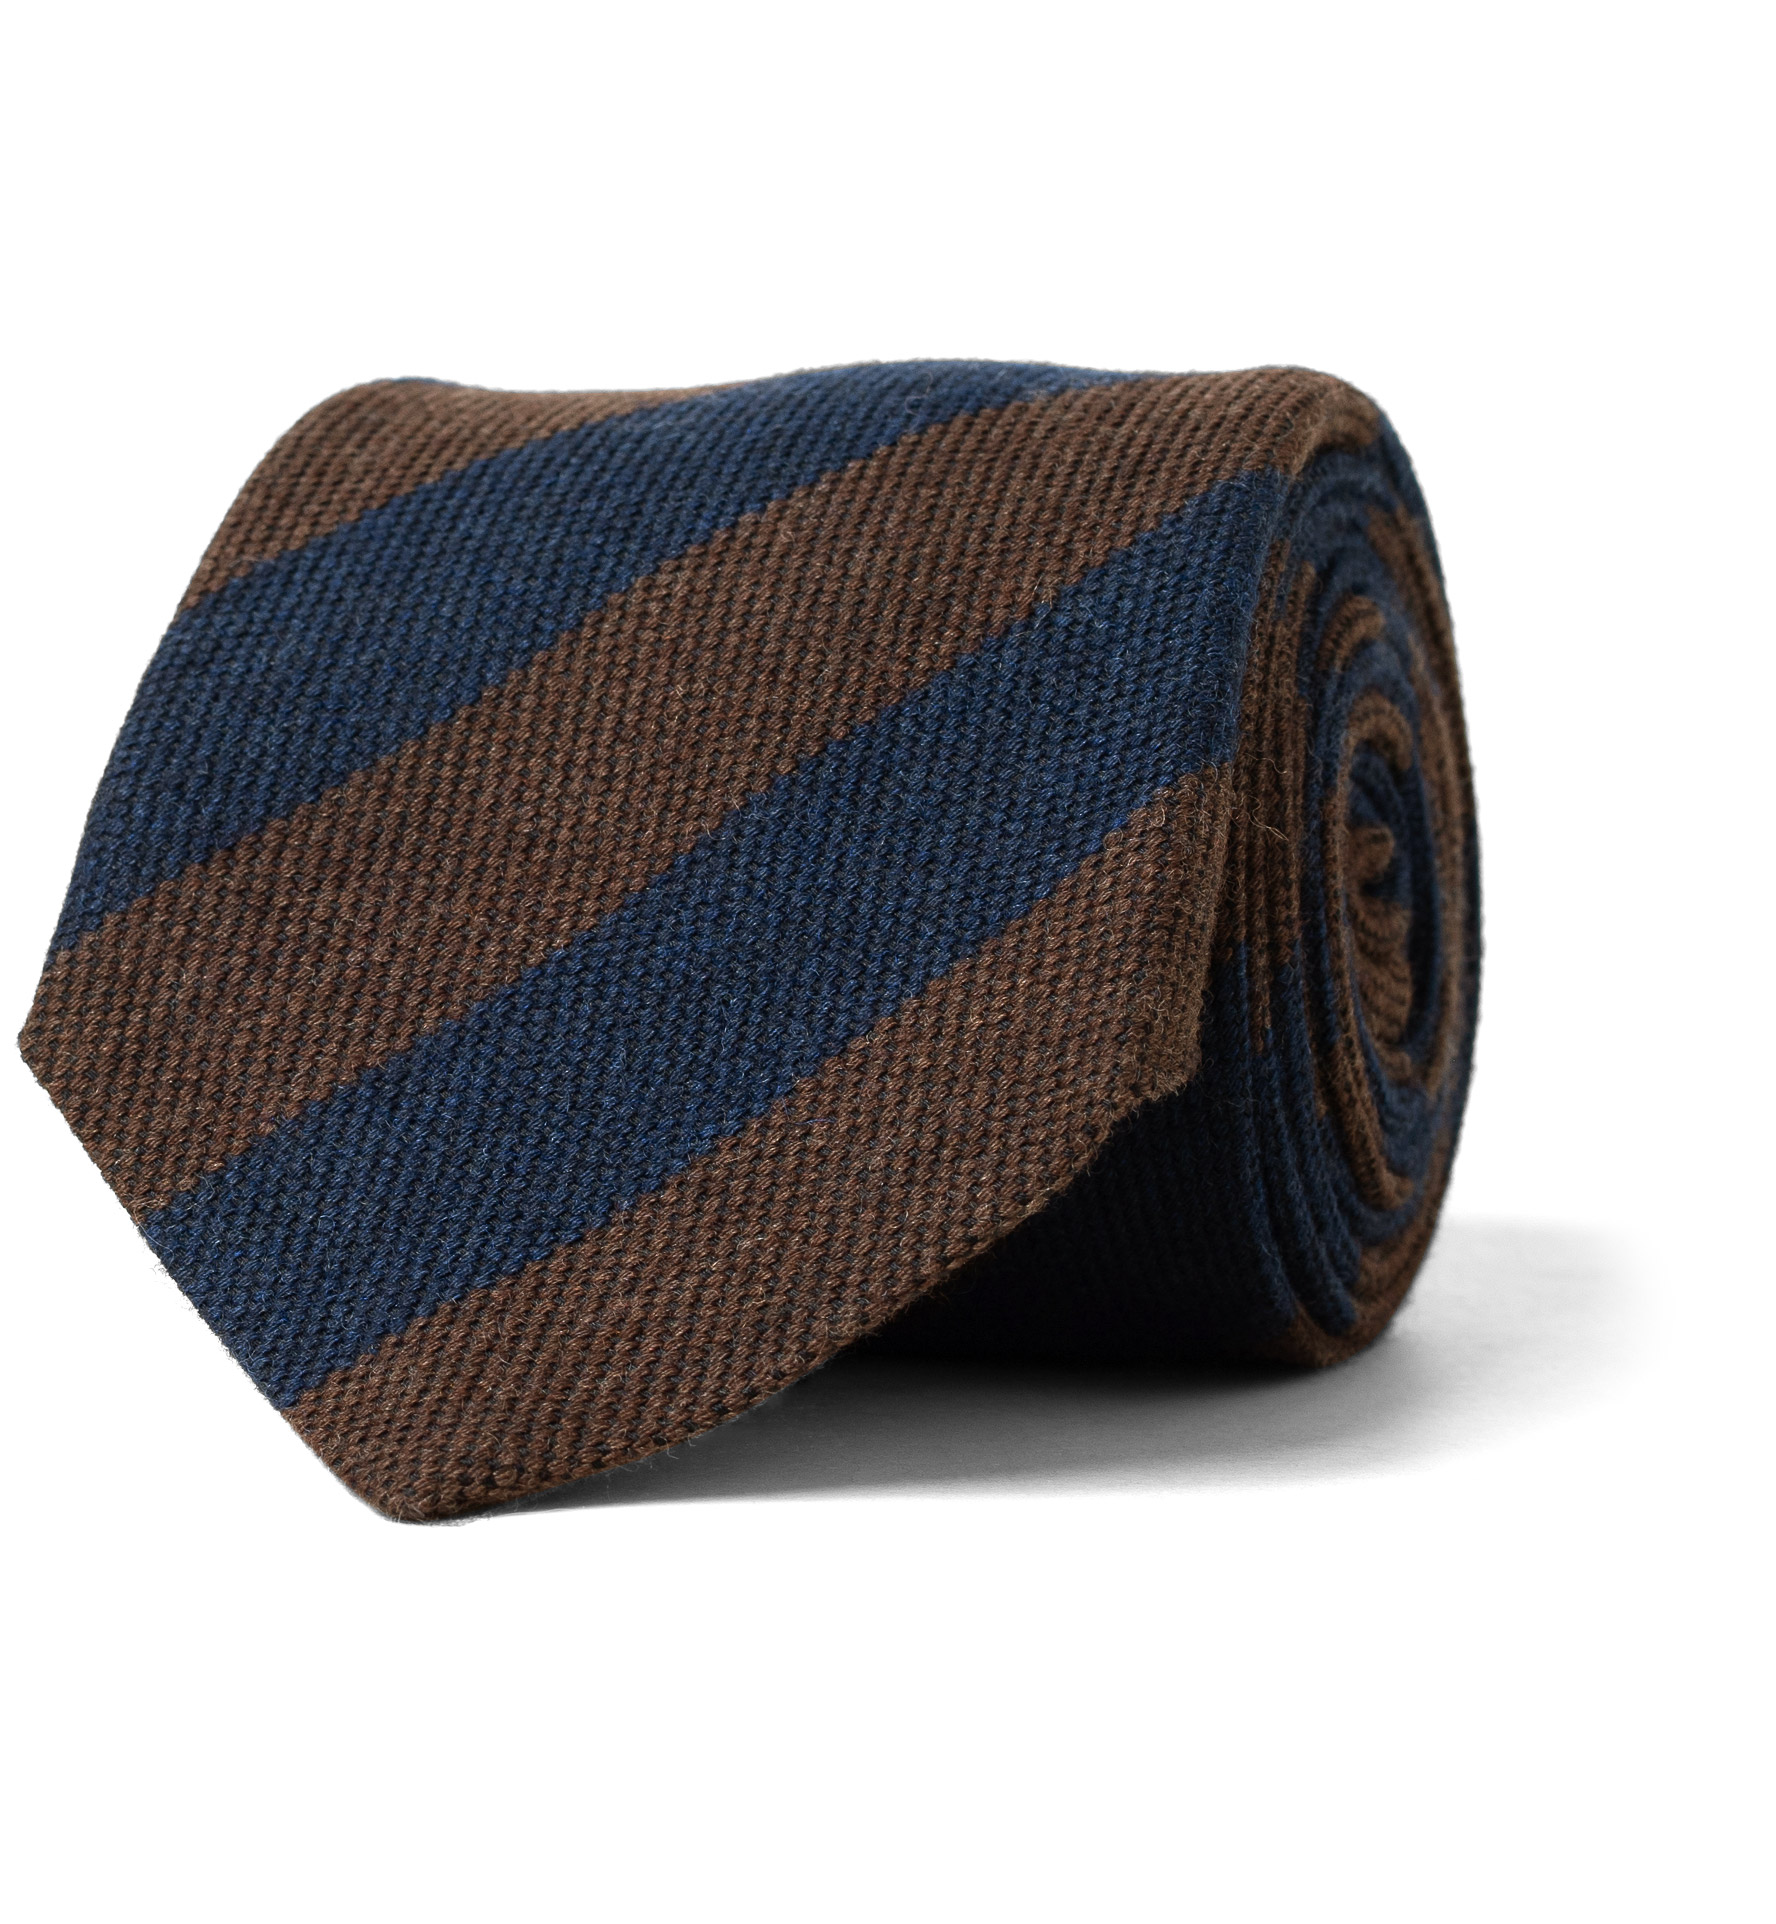 Zoom Image of Chestnut and Navy Striped Wool Tie